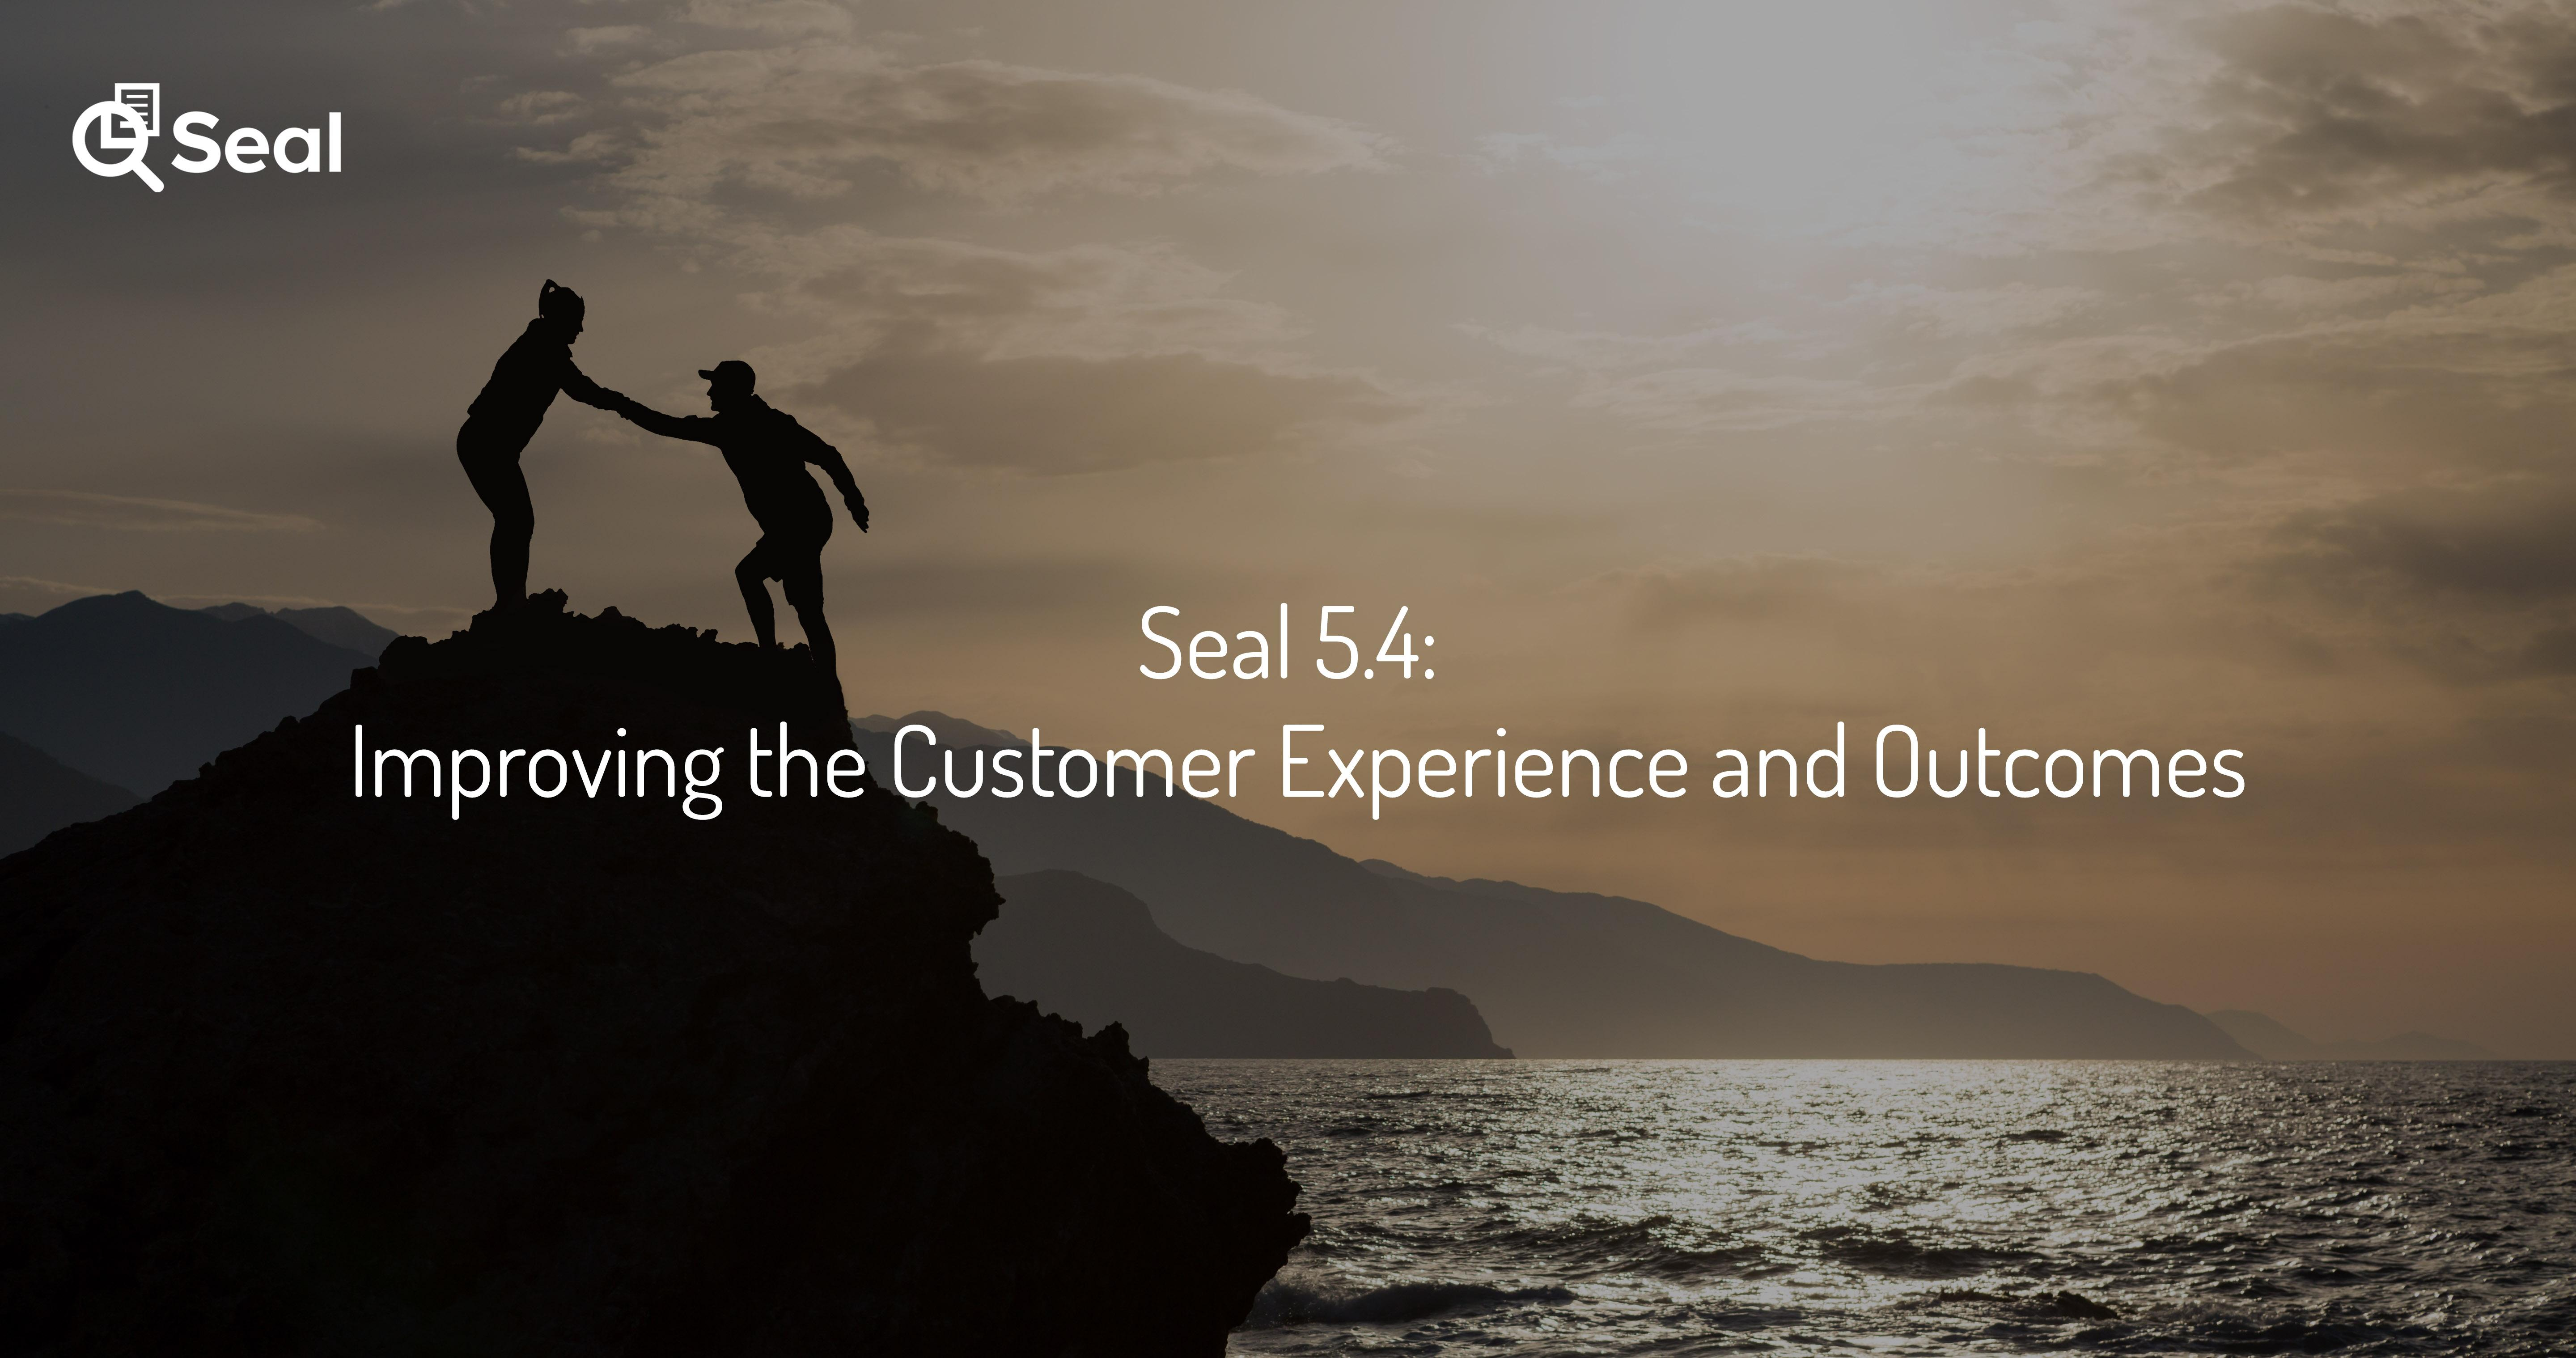 Seal 5.4: Improving the Customer Experience and Outcomes